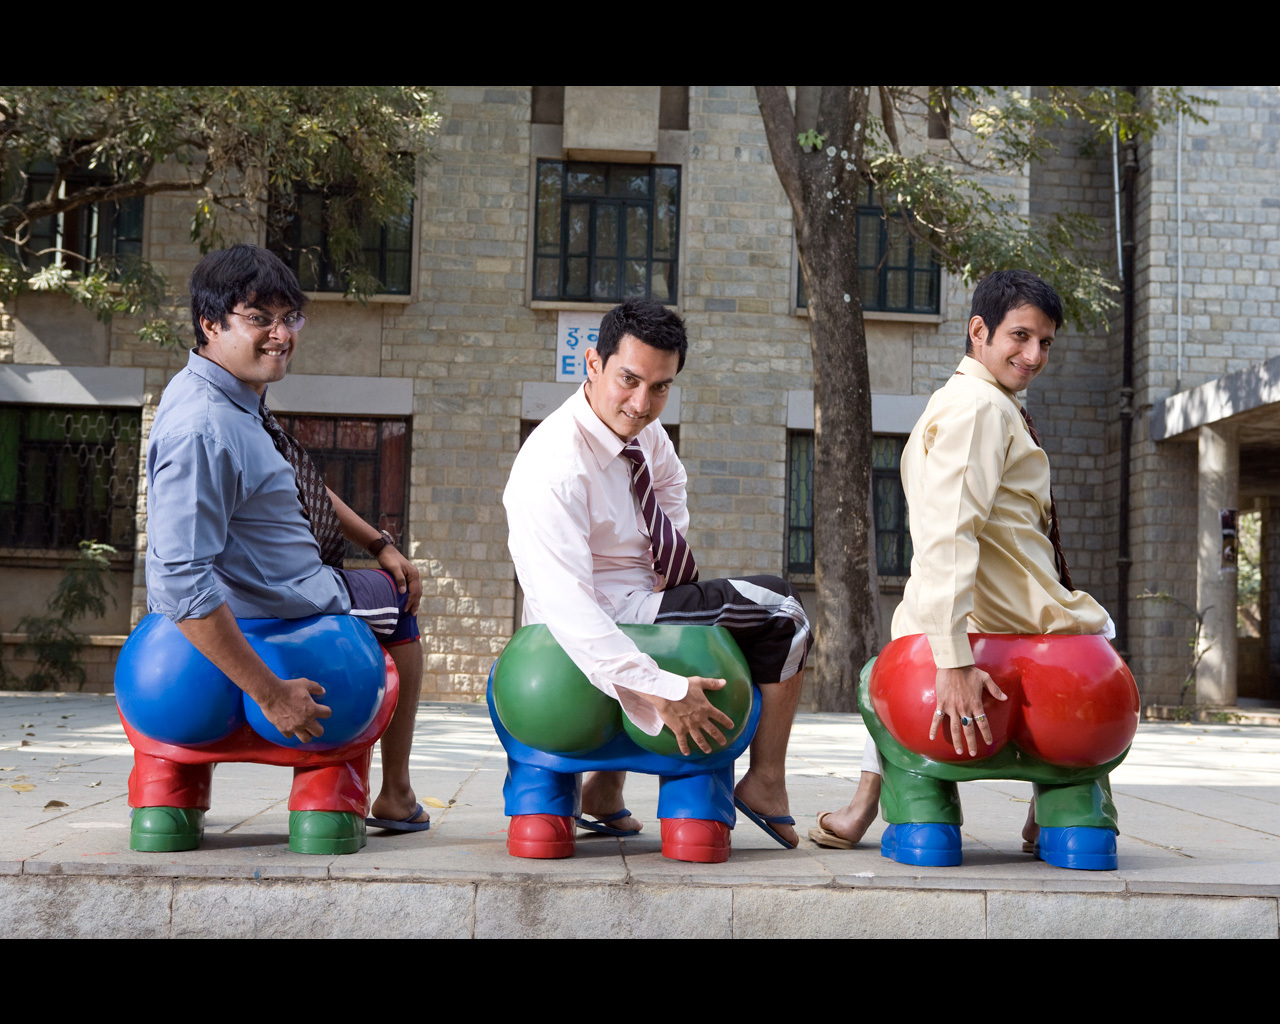 three idiots Yify yts - 3 idiots two friends are searching for their long lost companion they revisit their college days and recall the memories of their friend who inspired them to think differently.